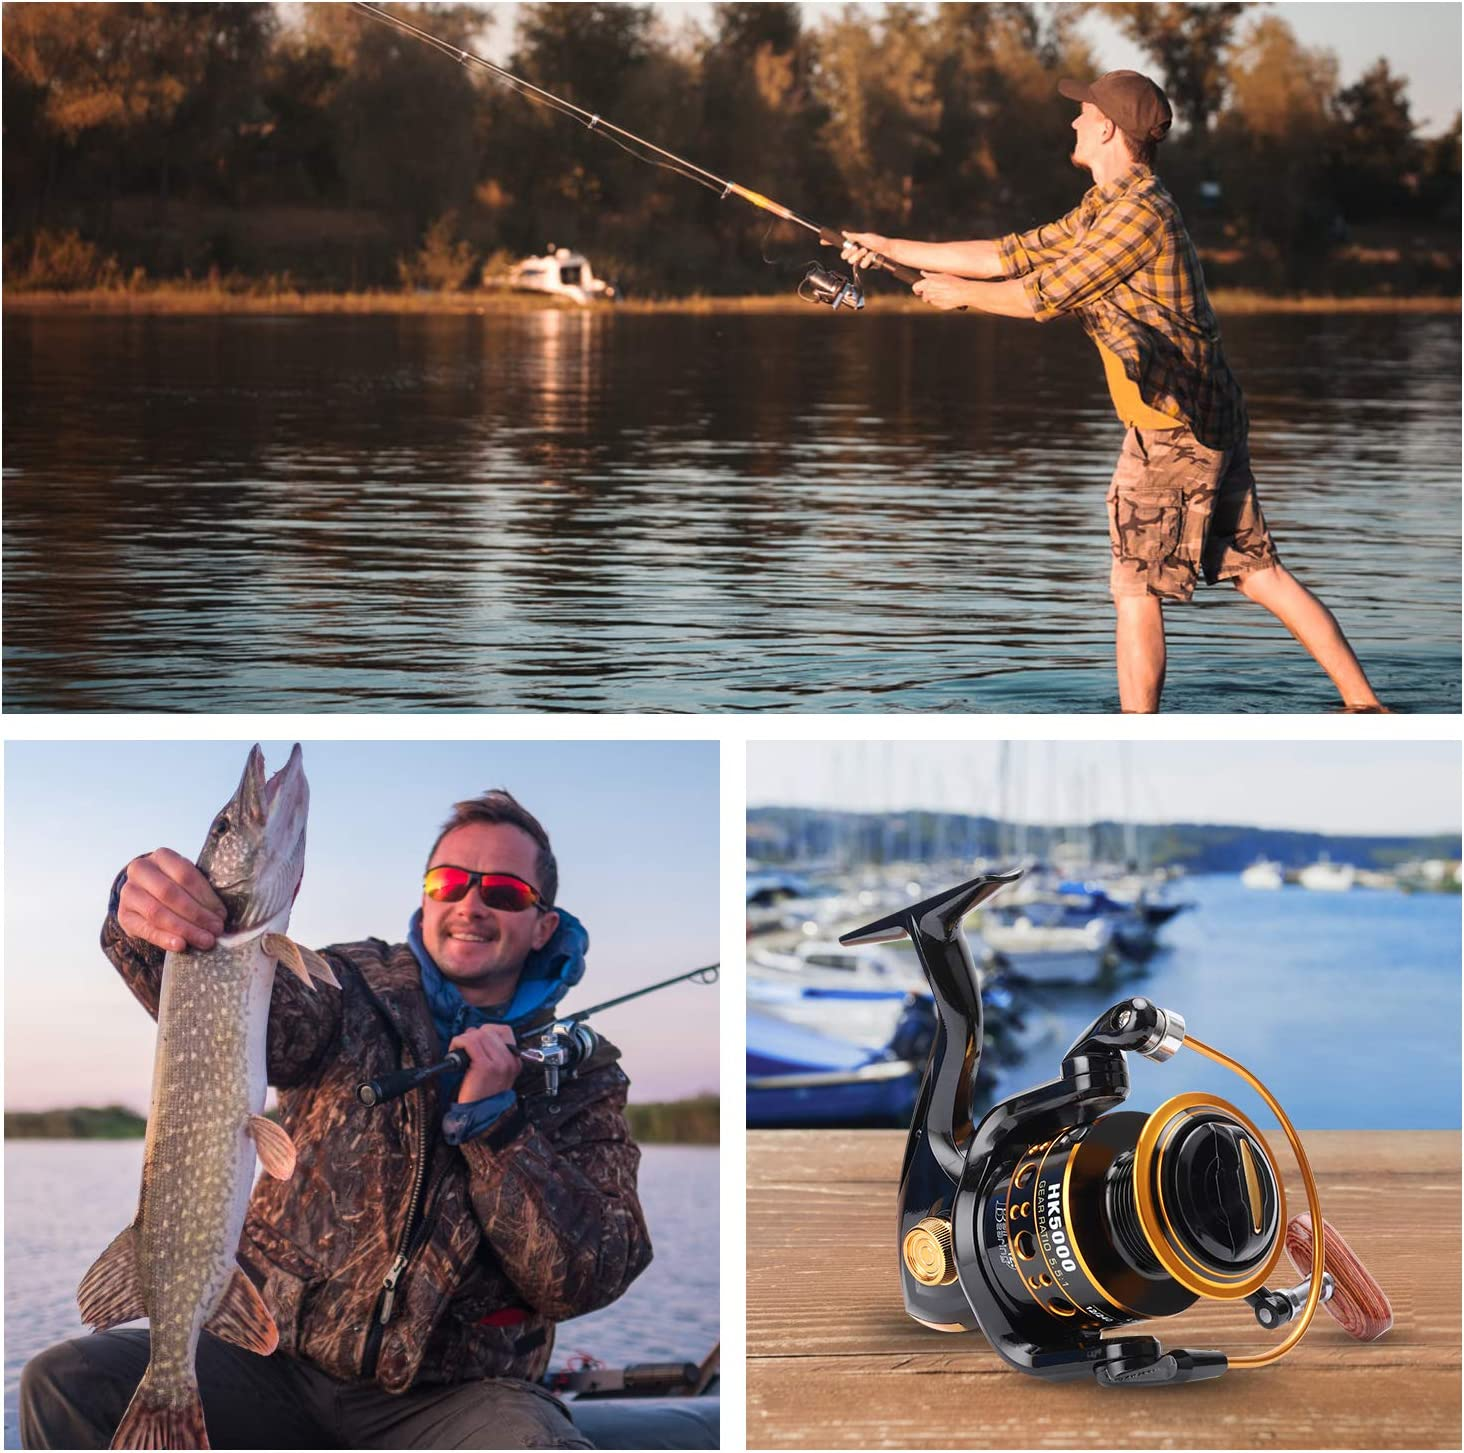 GOLD SHARKING Aluminum Spinning reels Light Weight for Saltwater Freshwater Ultra Smooth Powerful Spinning Fishing Reels12 Ball Bearings